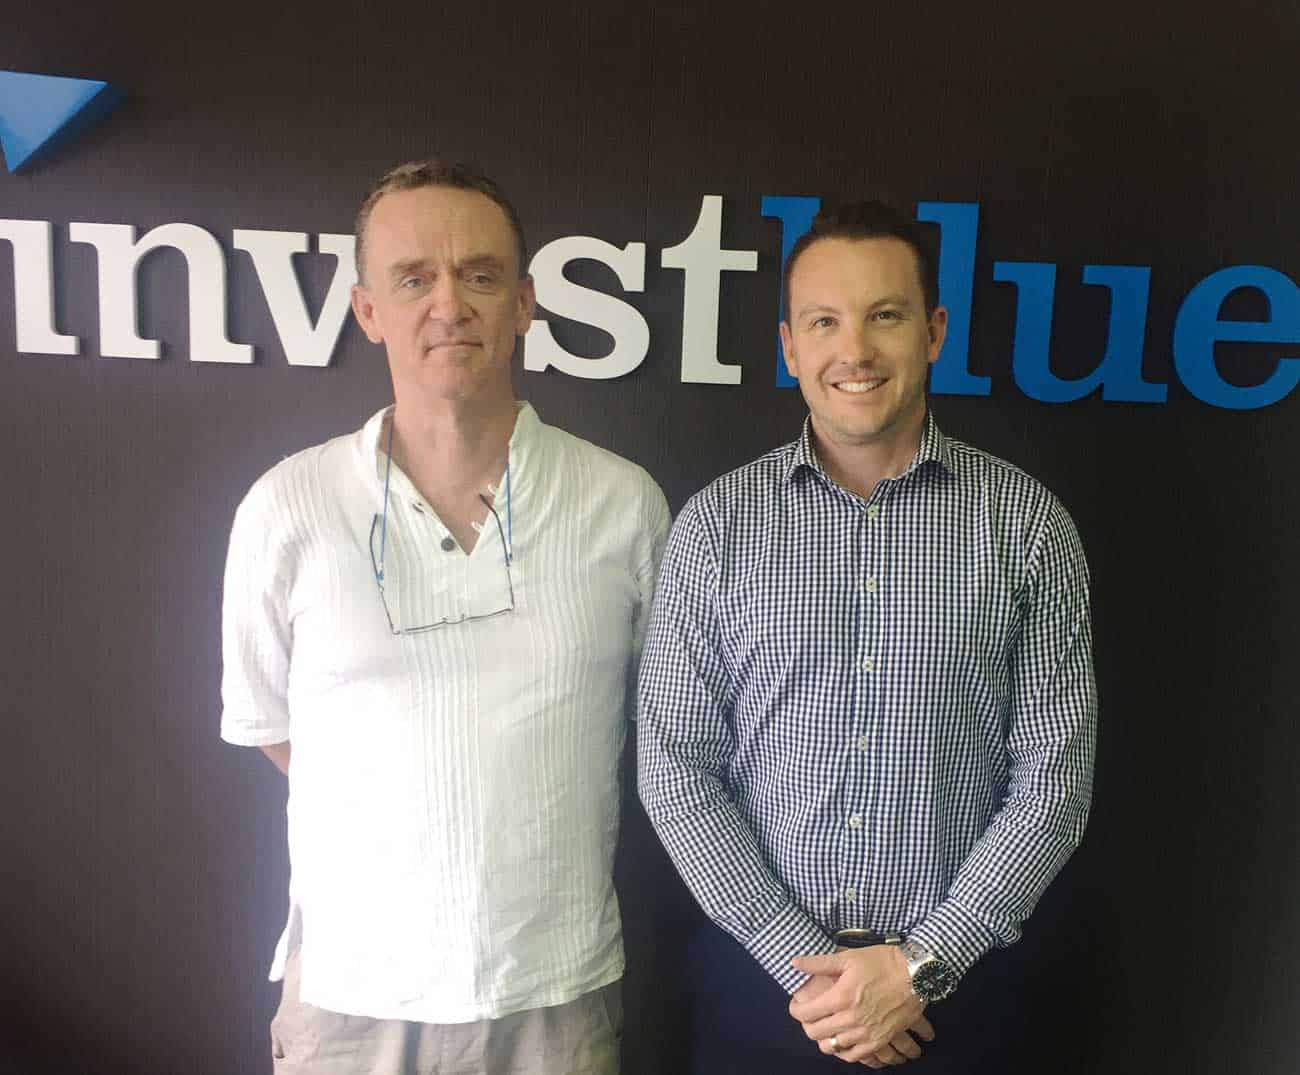 Shane and Ben at the Invest Blue Coffs Harbour Office